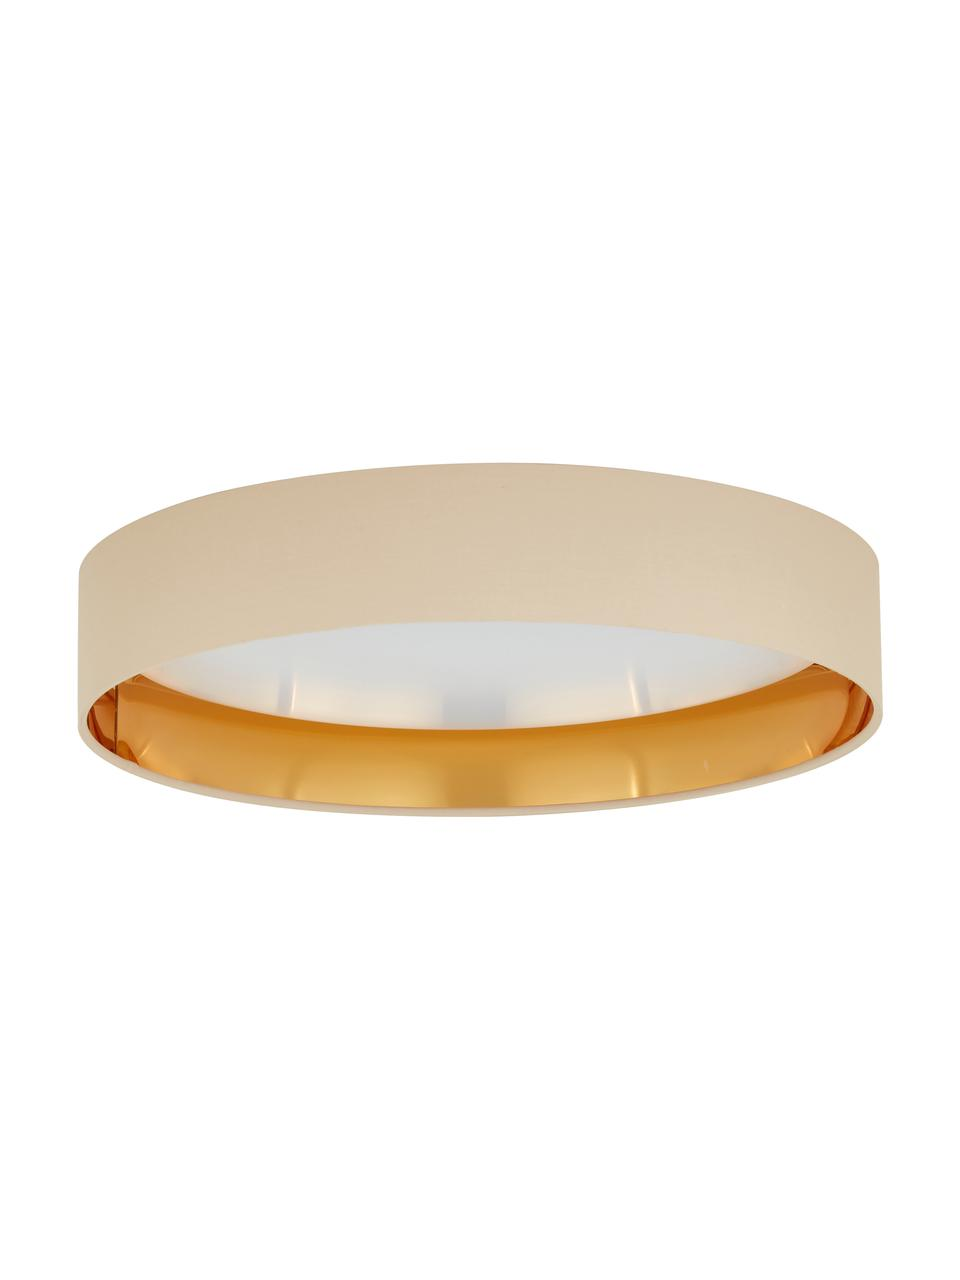 LED plafondlamp Mallory in taupe, Diffuser: kunststof, Taupe, Ø 41 x H 10 cm